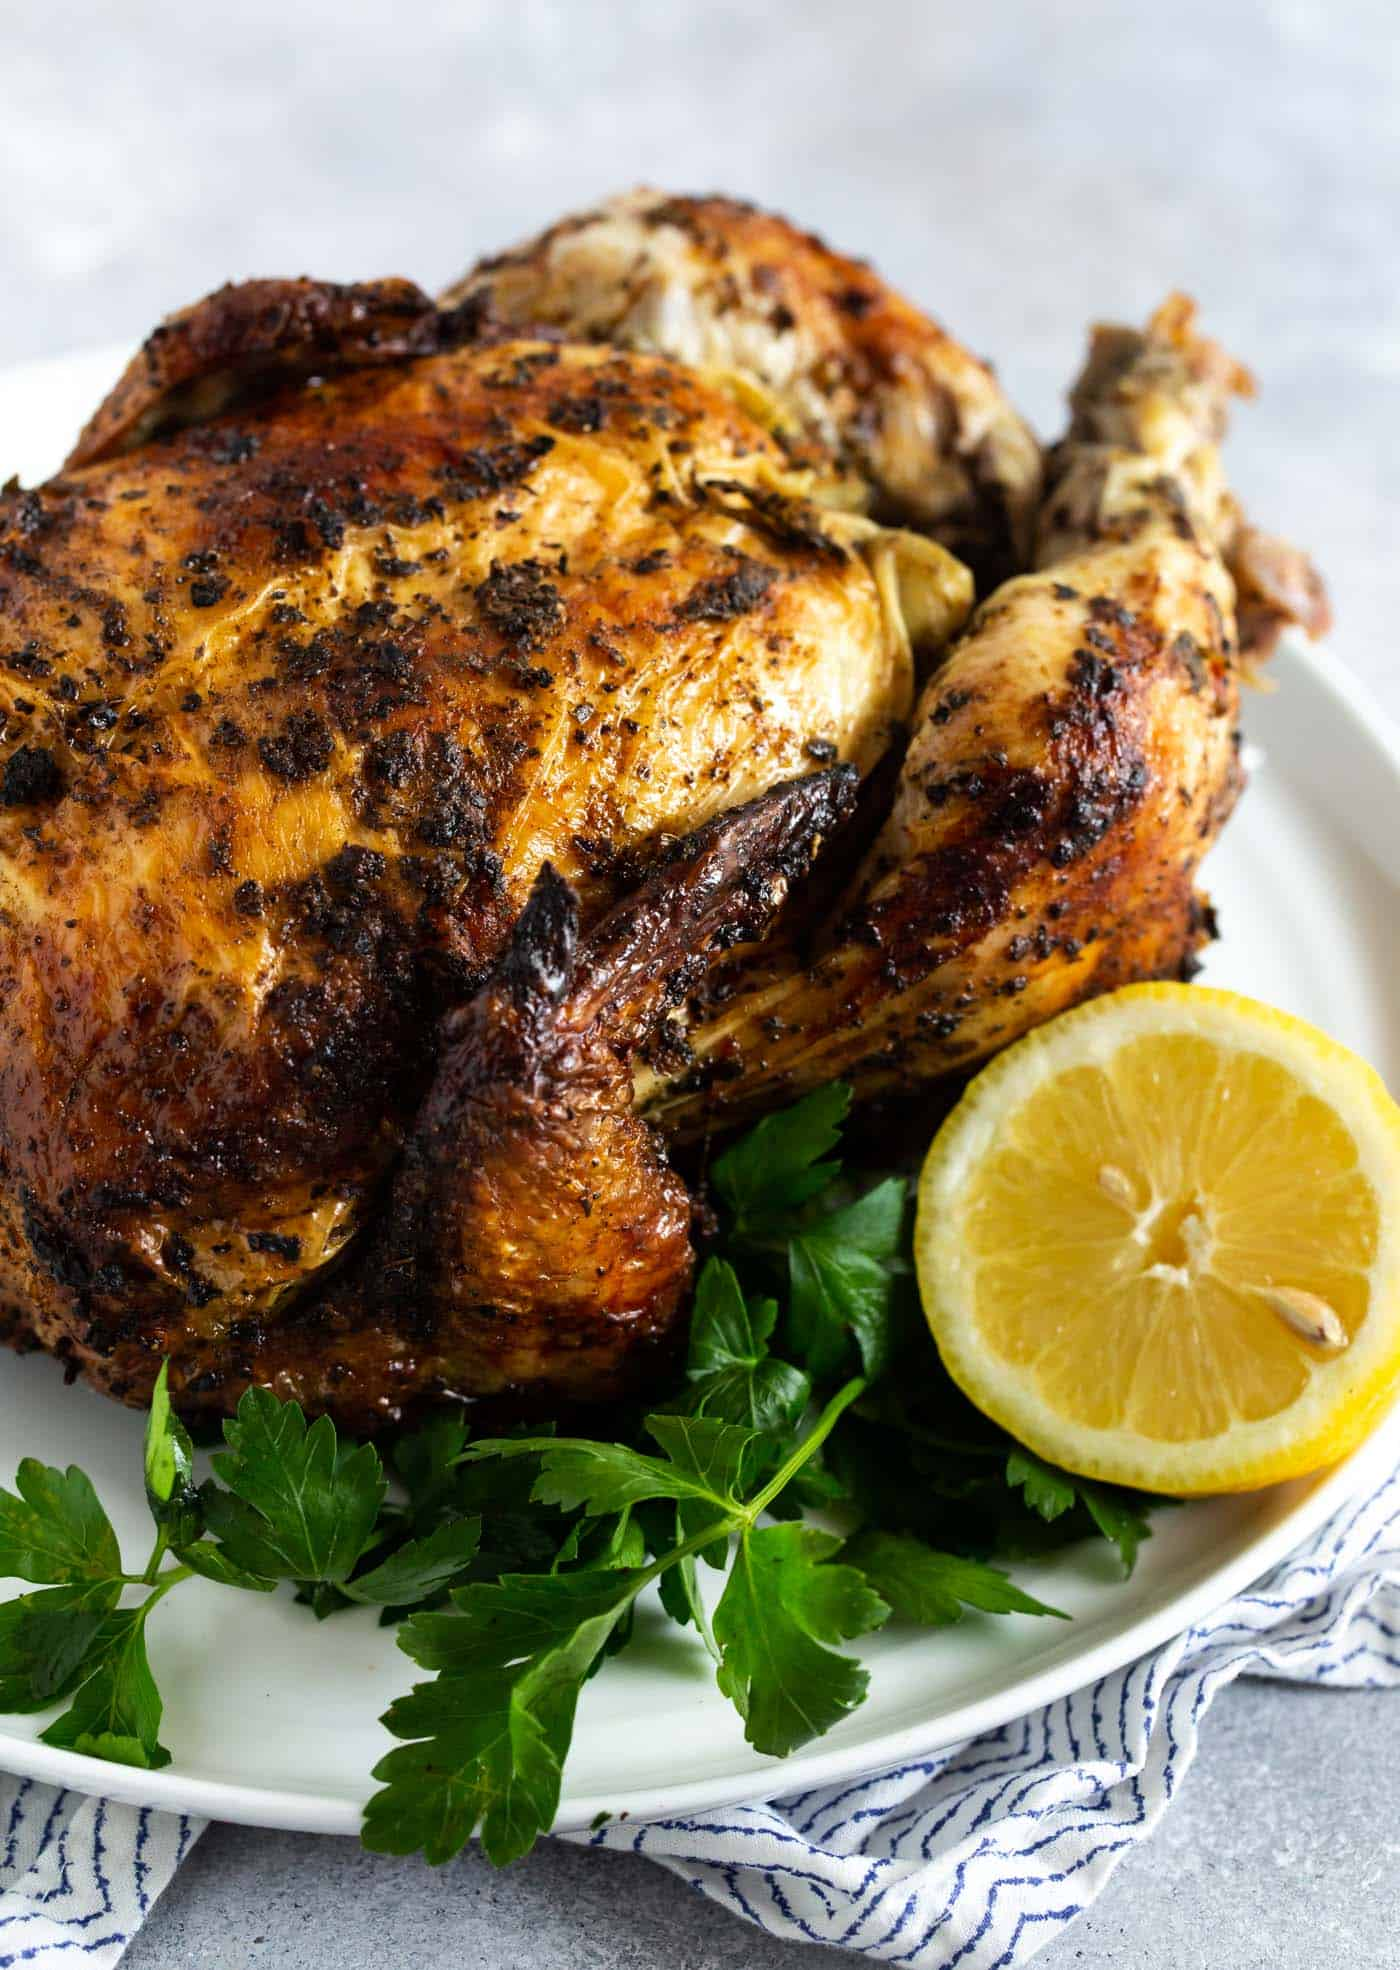 Image of whole roasted chicken on a white plate garnished with parsley and lemon as part of guide for How to Grill a Whole Chicken